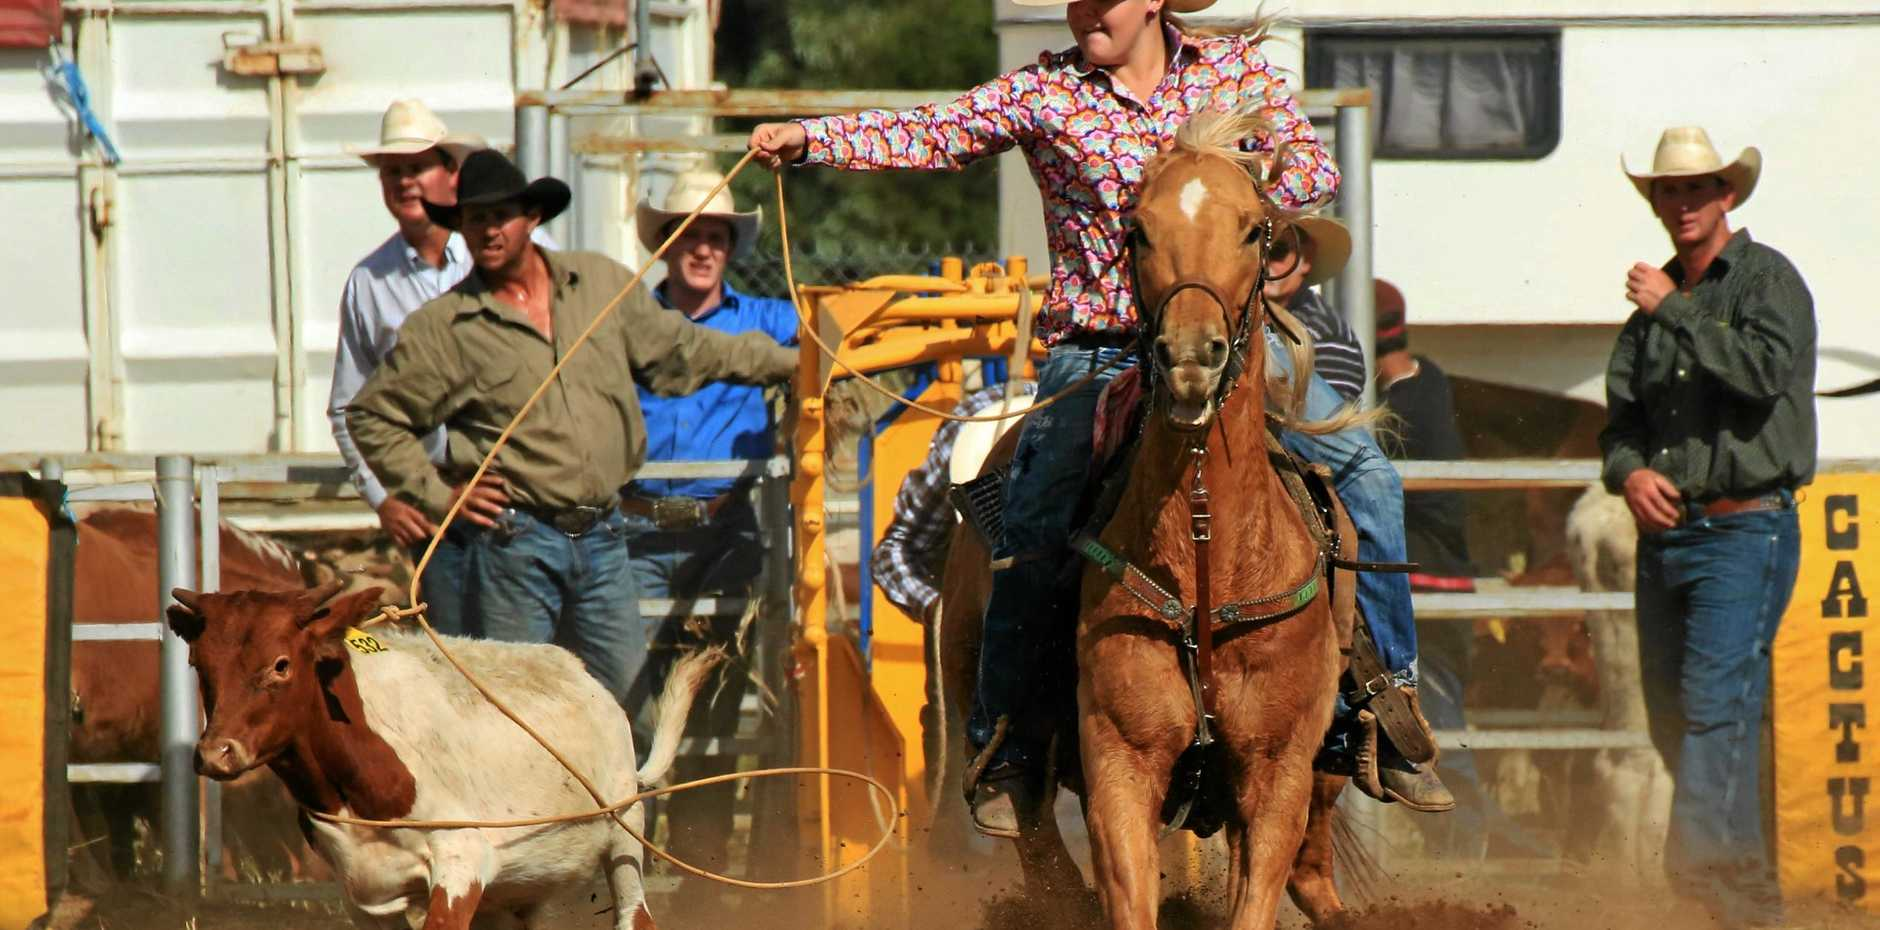 RIGHT: Aleisha O'Dell placed first in the ladies' breakaway with a ride of 2.8 seconds at the Blackwater May Day weekend rodeo last year.